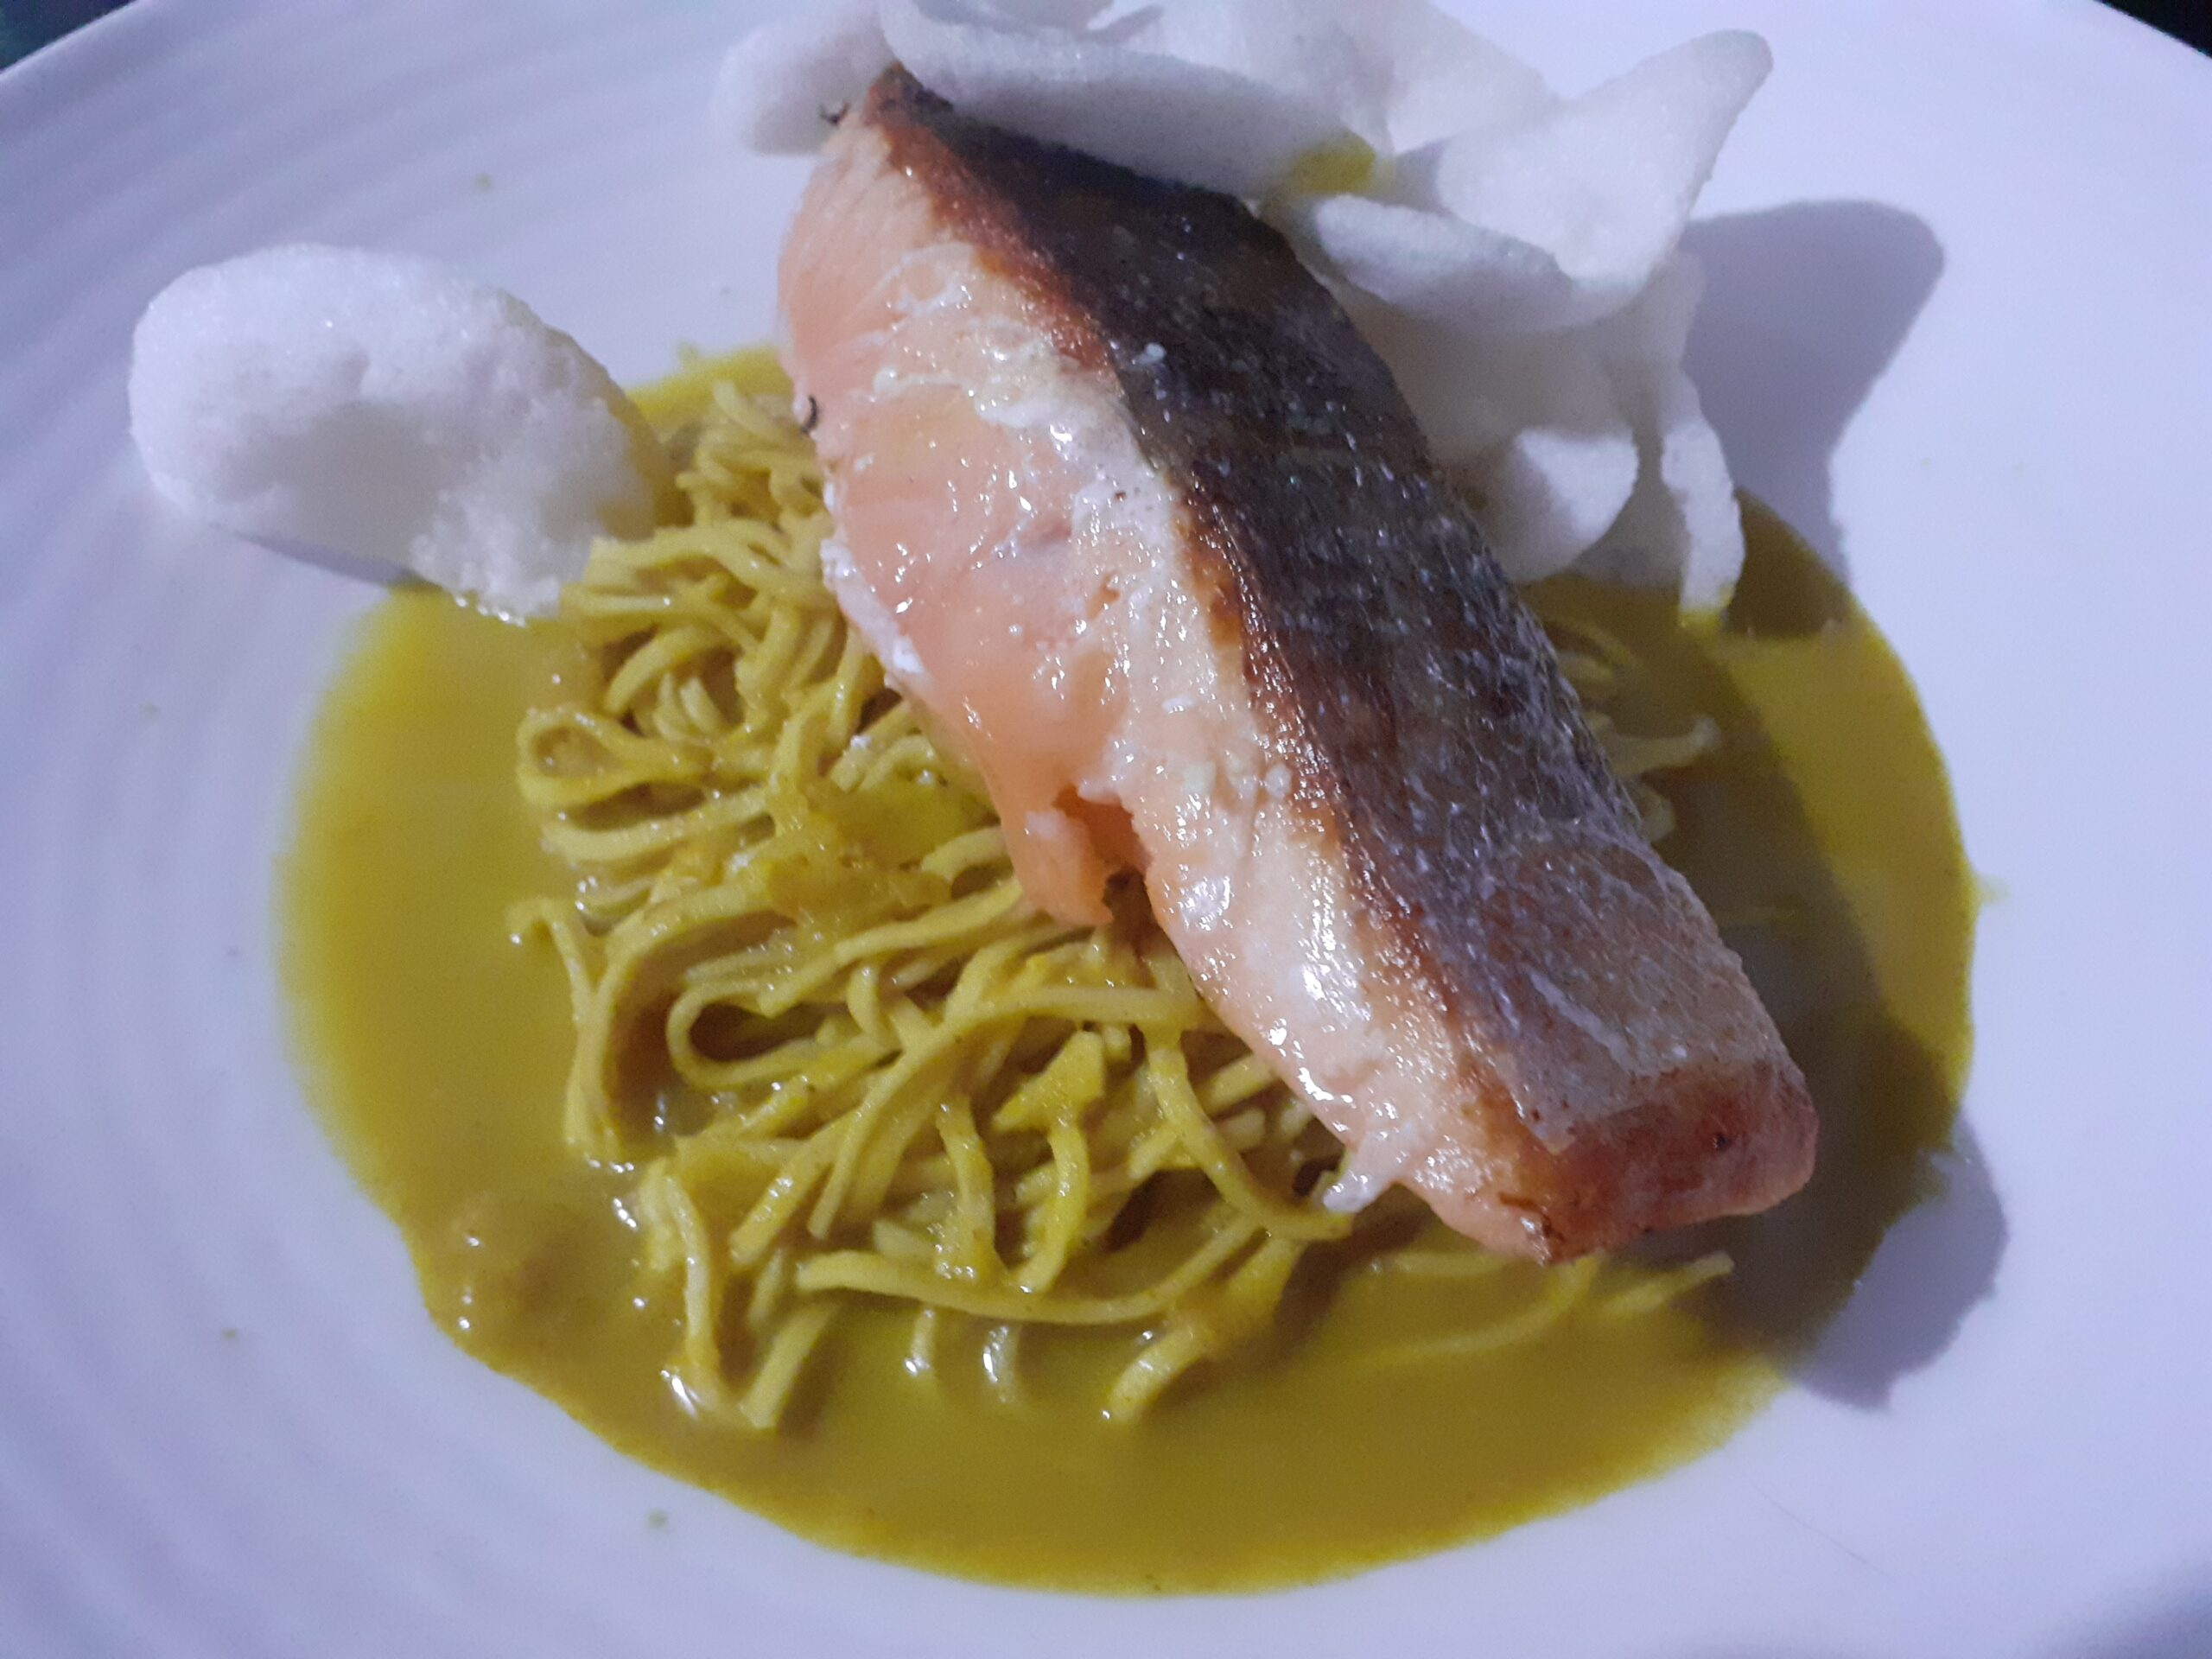 Pan Fried Salmon Supreme with Katsu Style Curried Noodles